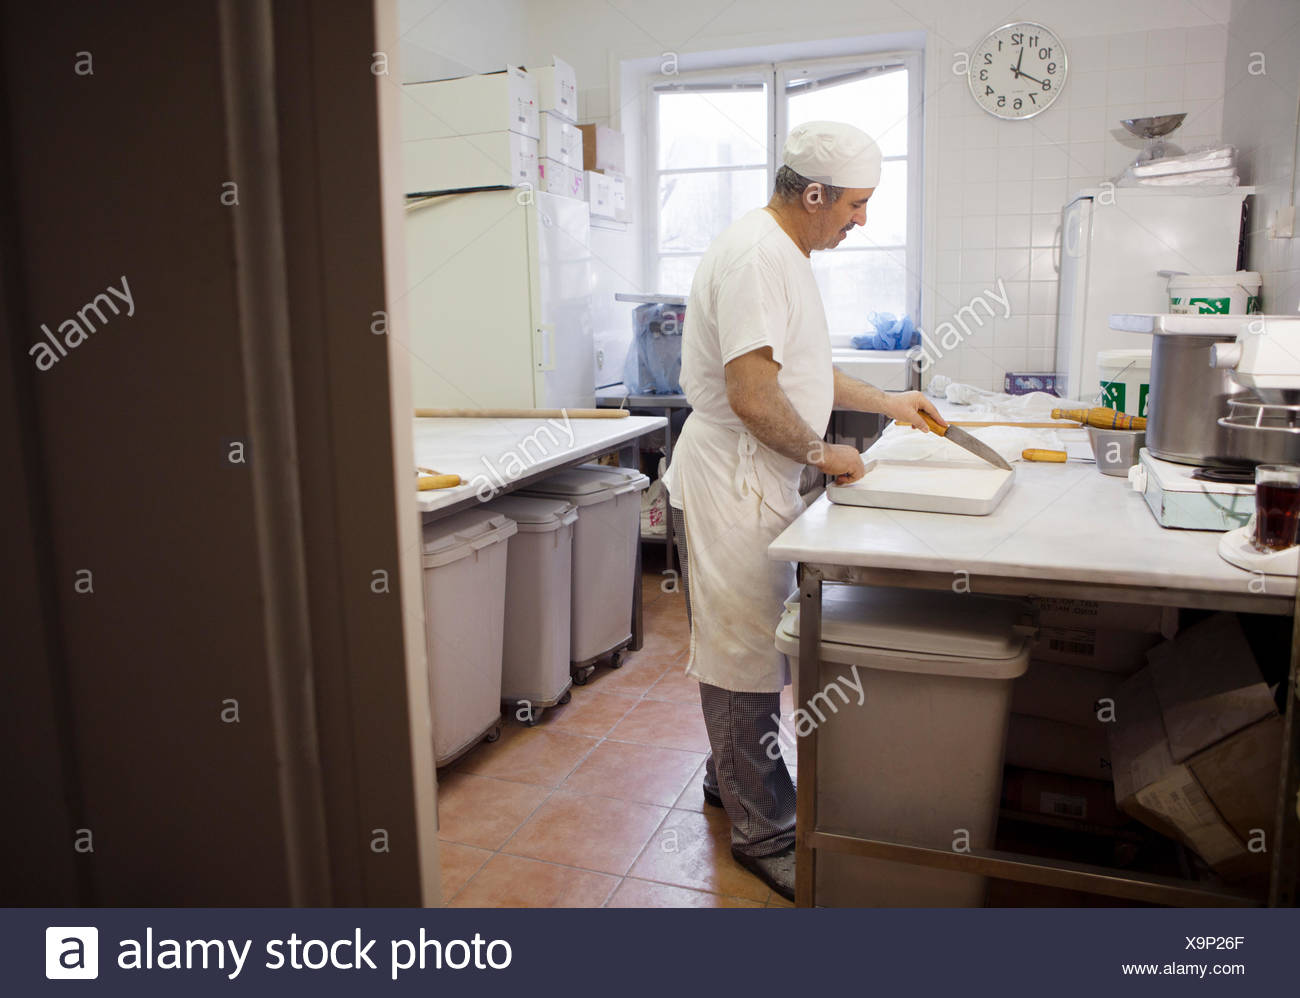 Chef baking baklava - Stock Image